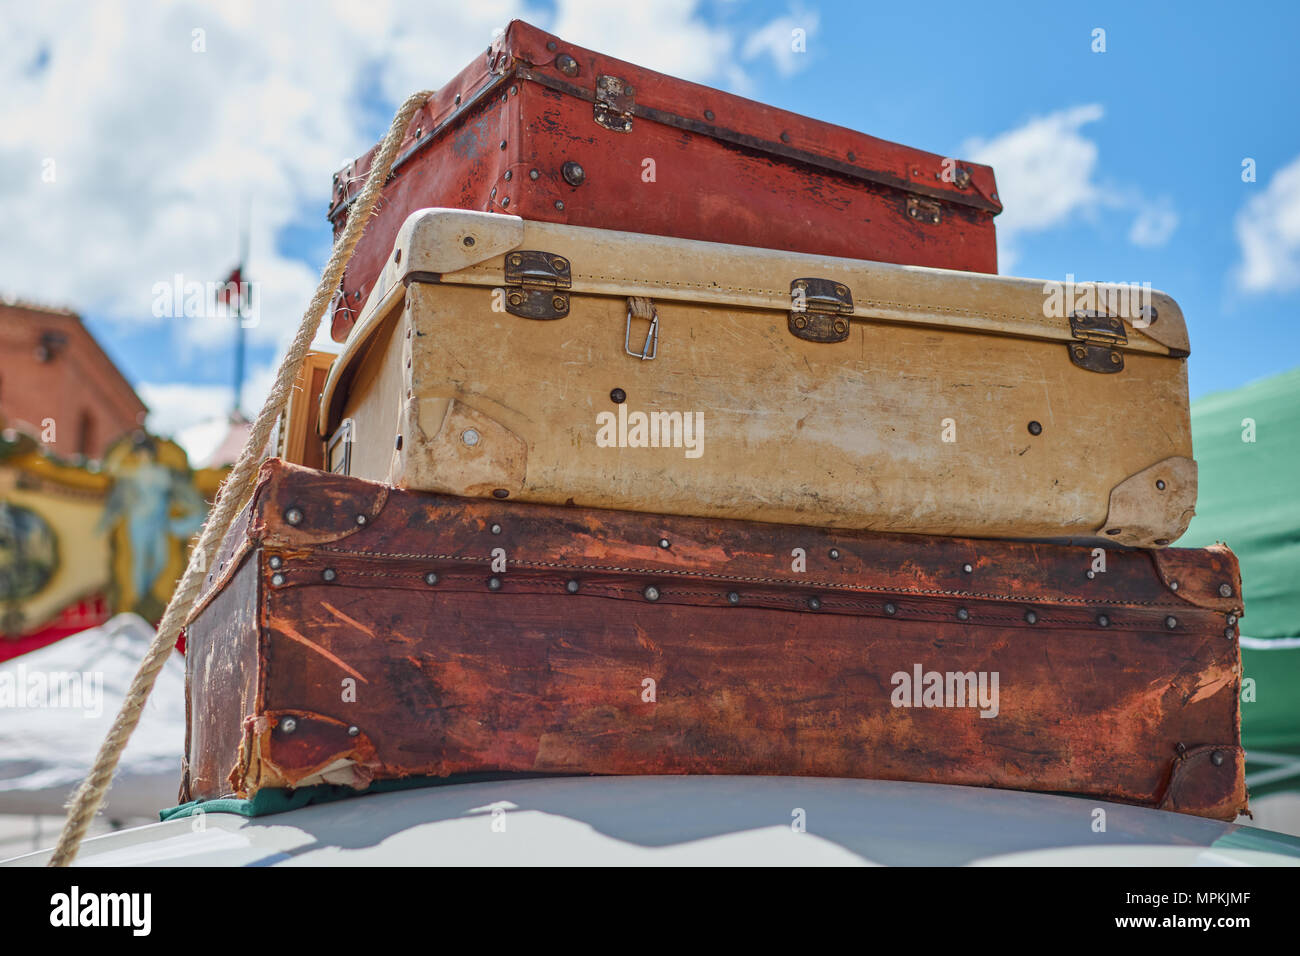 Close-up of old vintage travel suitcases fastened to the roof of a car with a rope and in the background a lovely blue sky with clouds in Segovia, Spa - Stock Image